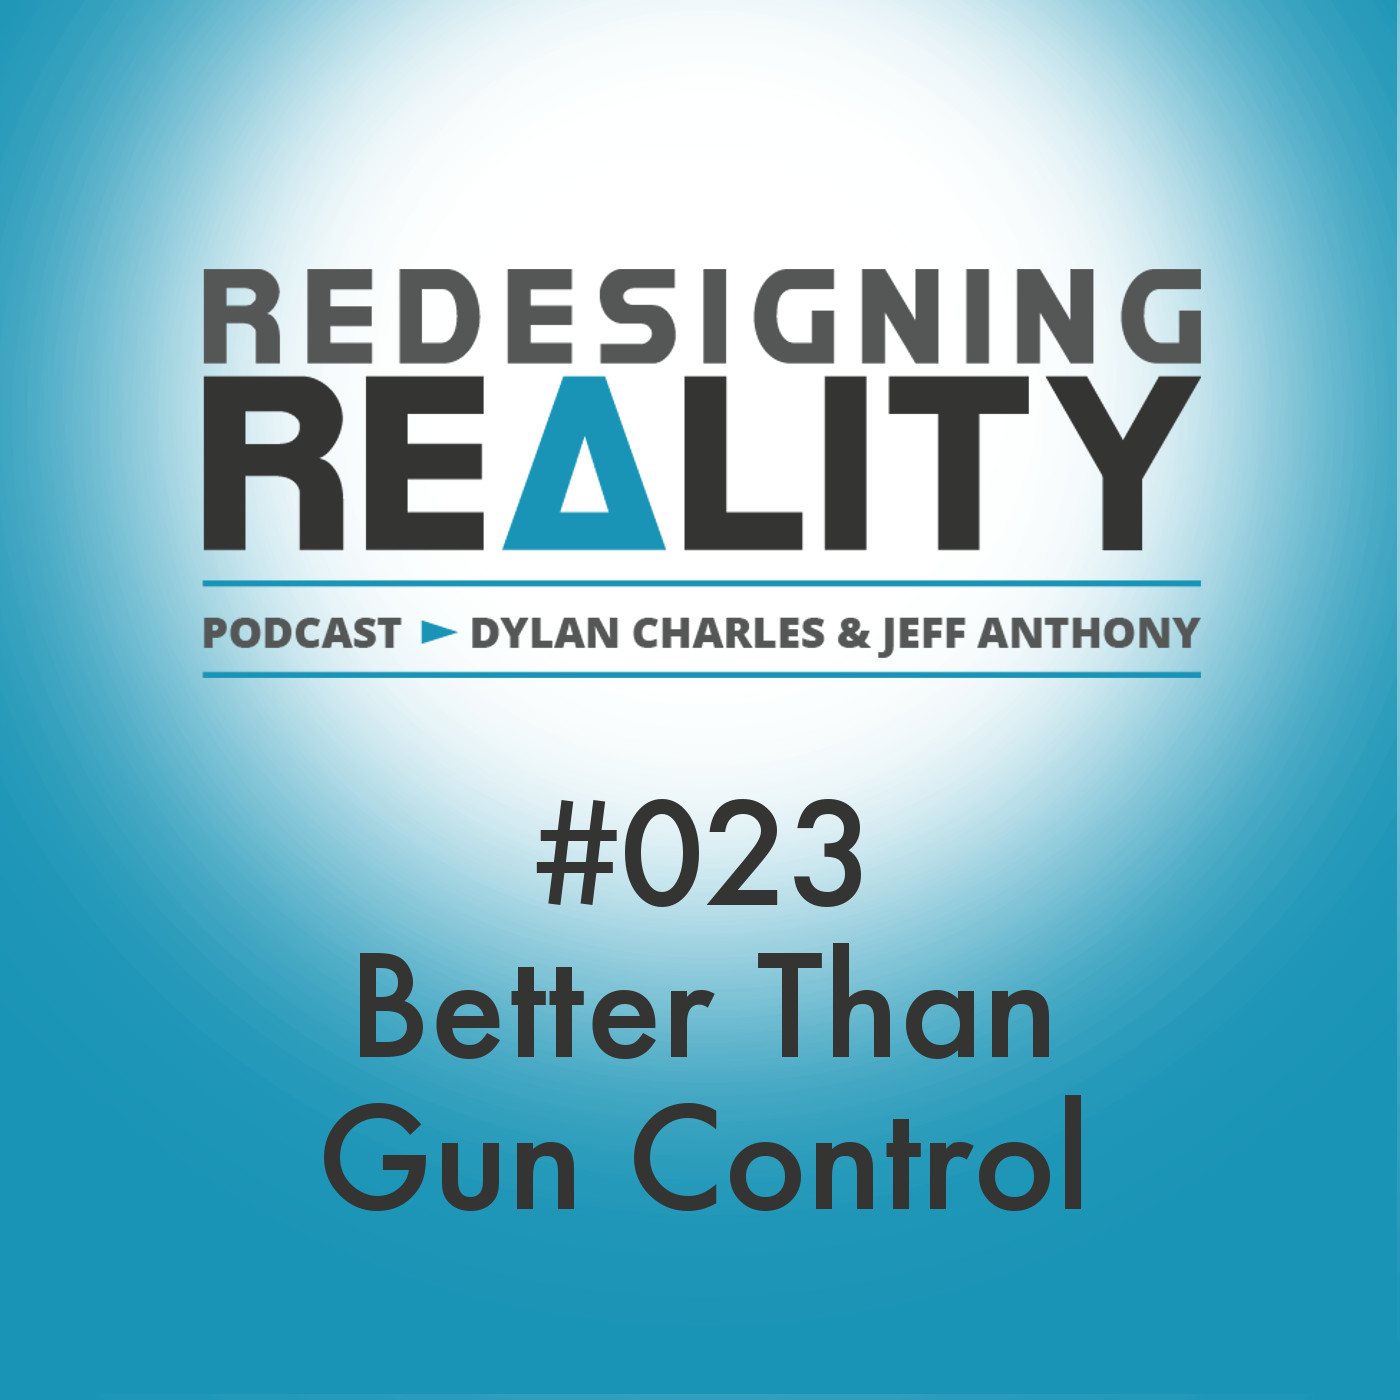 Artwork for Redesigning Reality #023 - Better Than Gun Control